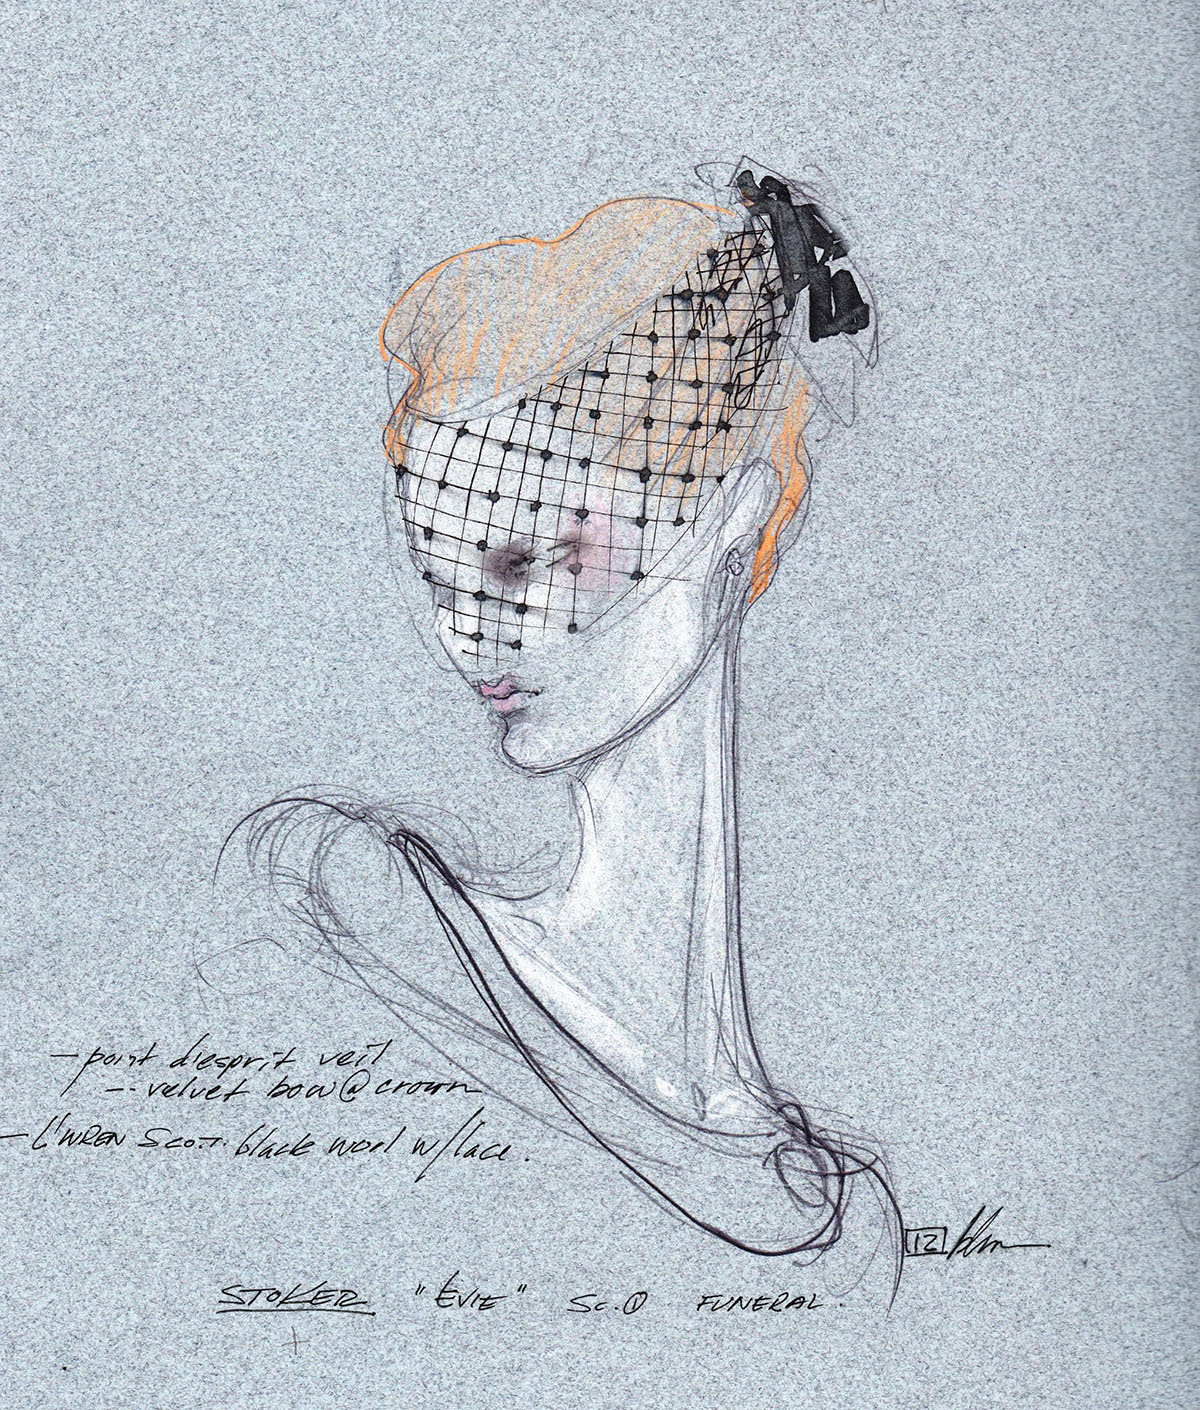 Bart Mueller's sketch for the veil added to the L'Wren Scott dress that Nicole Kidman wears in Stoker (2012) © Bart Mueller